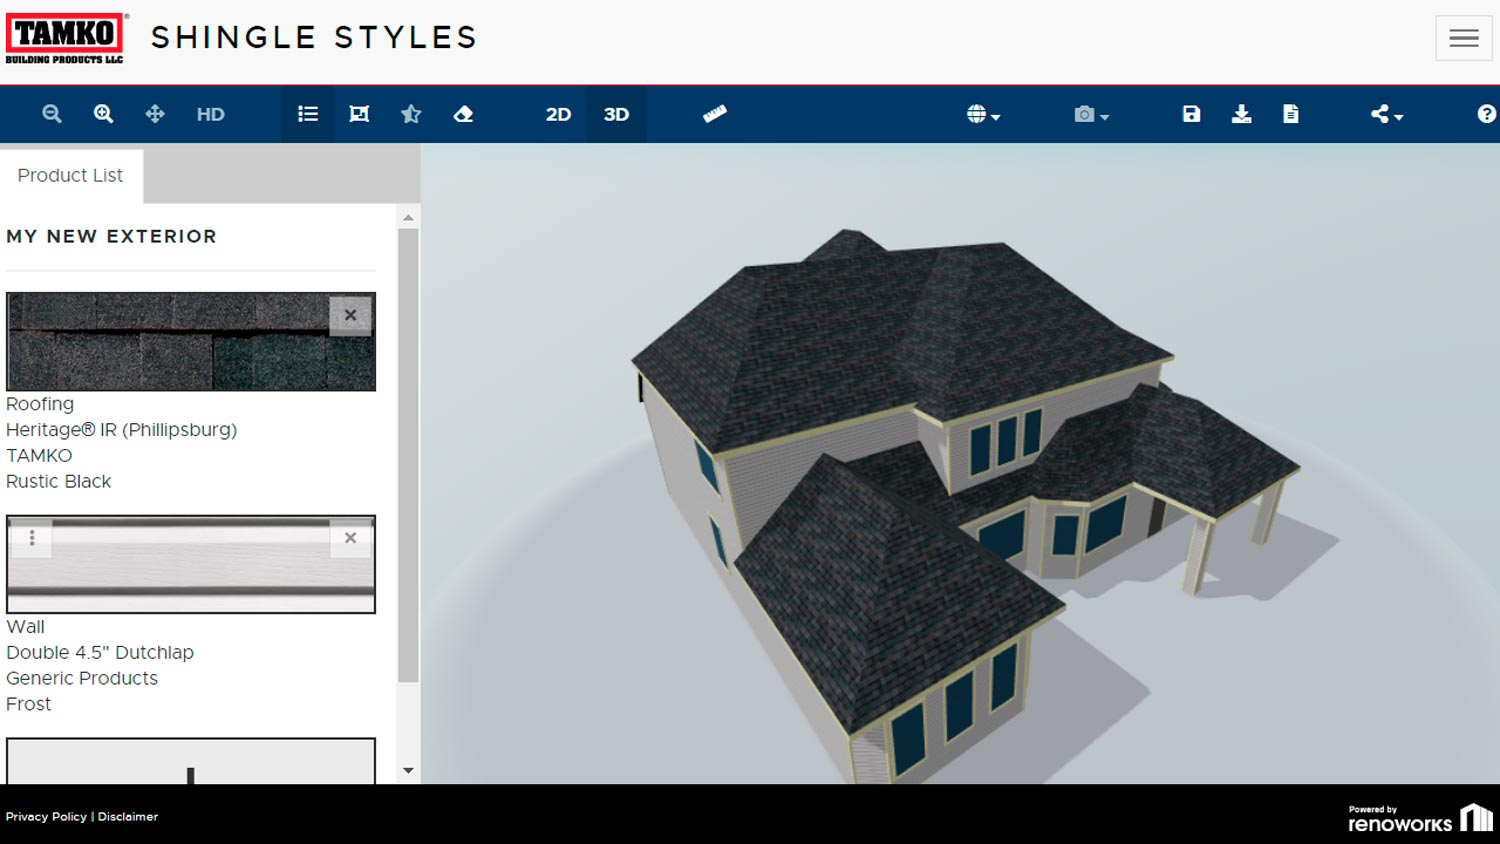 TAMKO Shingle Styles - Renoworks Visualizer (3D rendering)